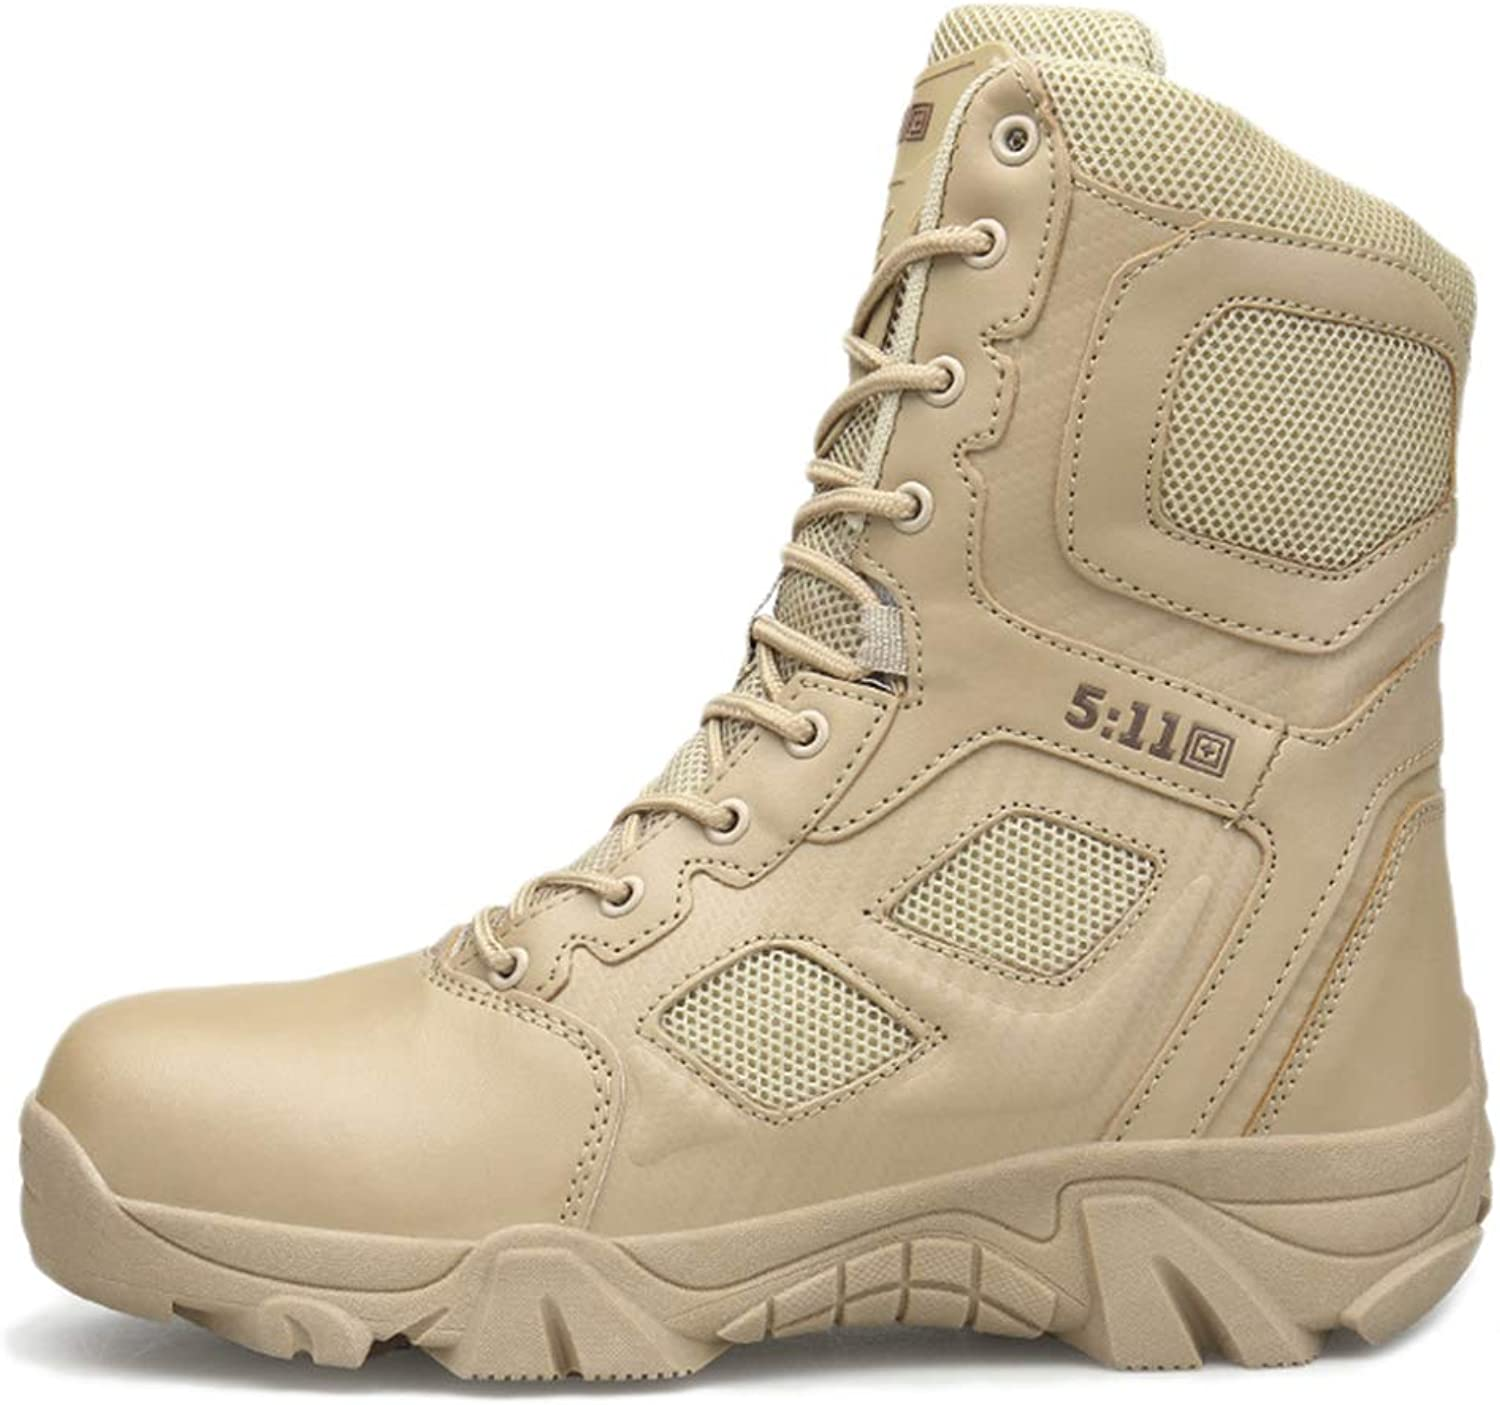 Yra Desert Combat Boots Men High-Top Military Boots Non-Slip Outdoor Training shoes For Trekking Hiking Sneakers Lightweight Off-Road Tactics Footwear